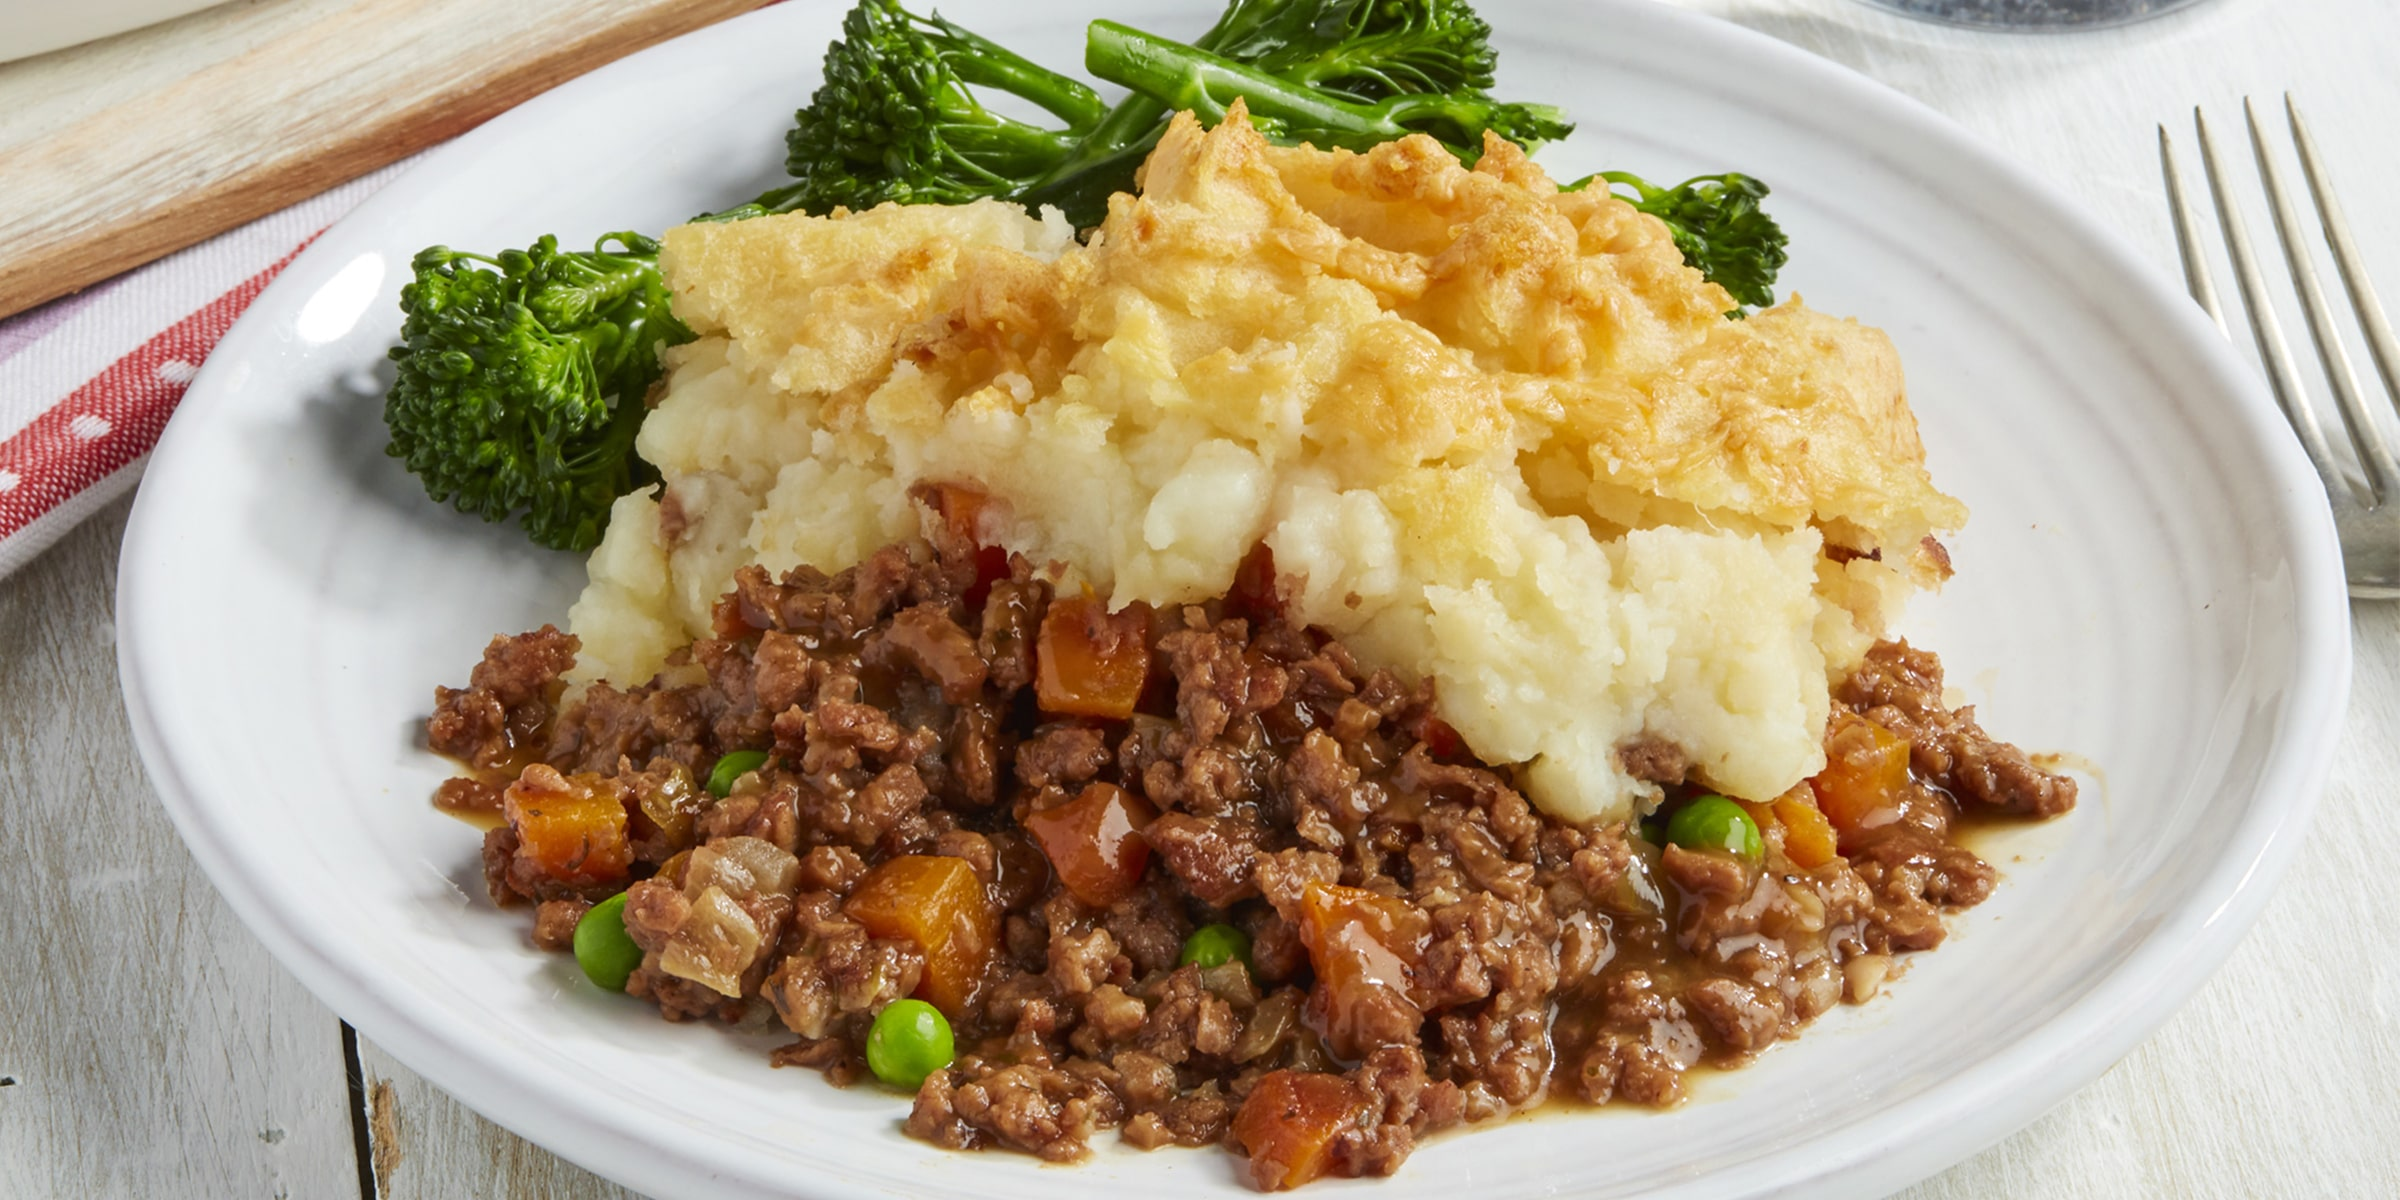 Meat-free cottage pie with Meatless Farm mince, peas, carrot, mashed potato and broccoli